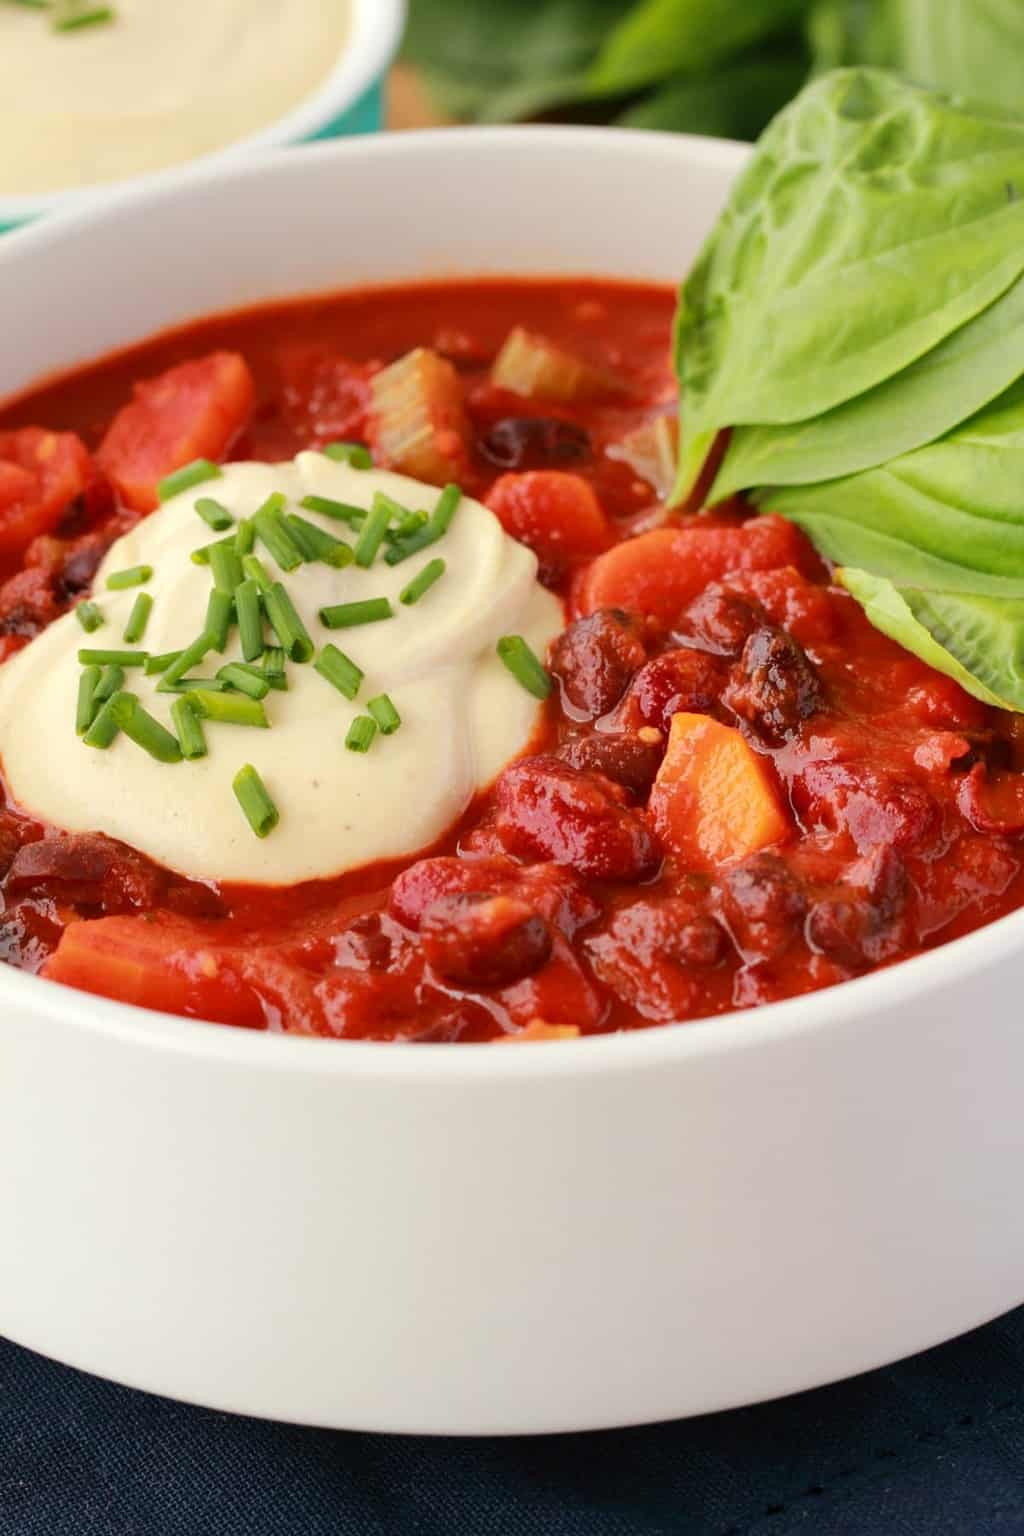 Vegan Chili in a white bowl with a dollop of cashew cream on the top and chopped chives, fresh basil leaves on the side.